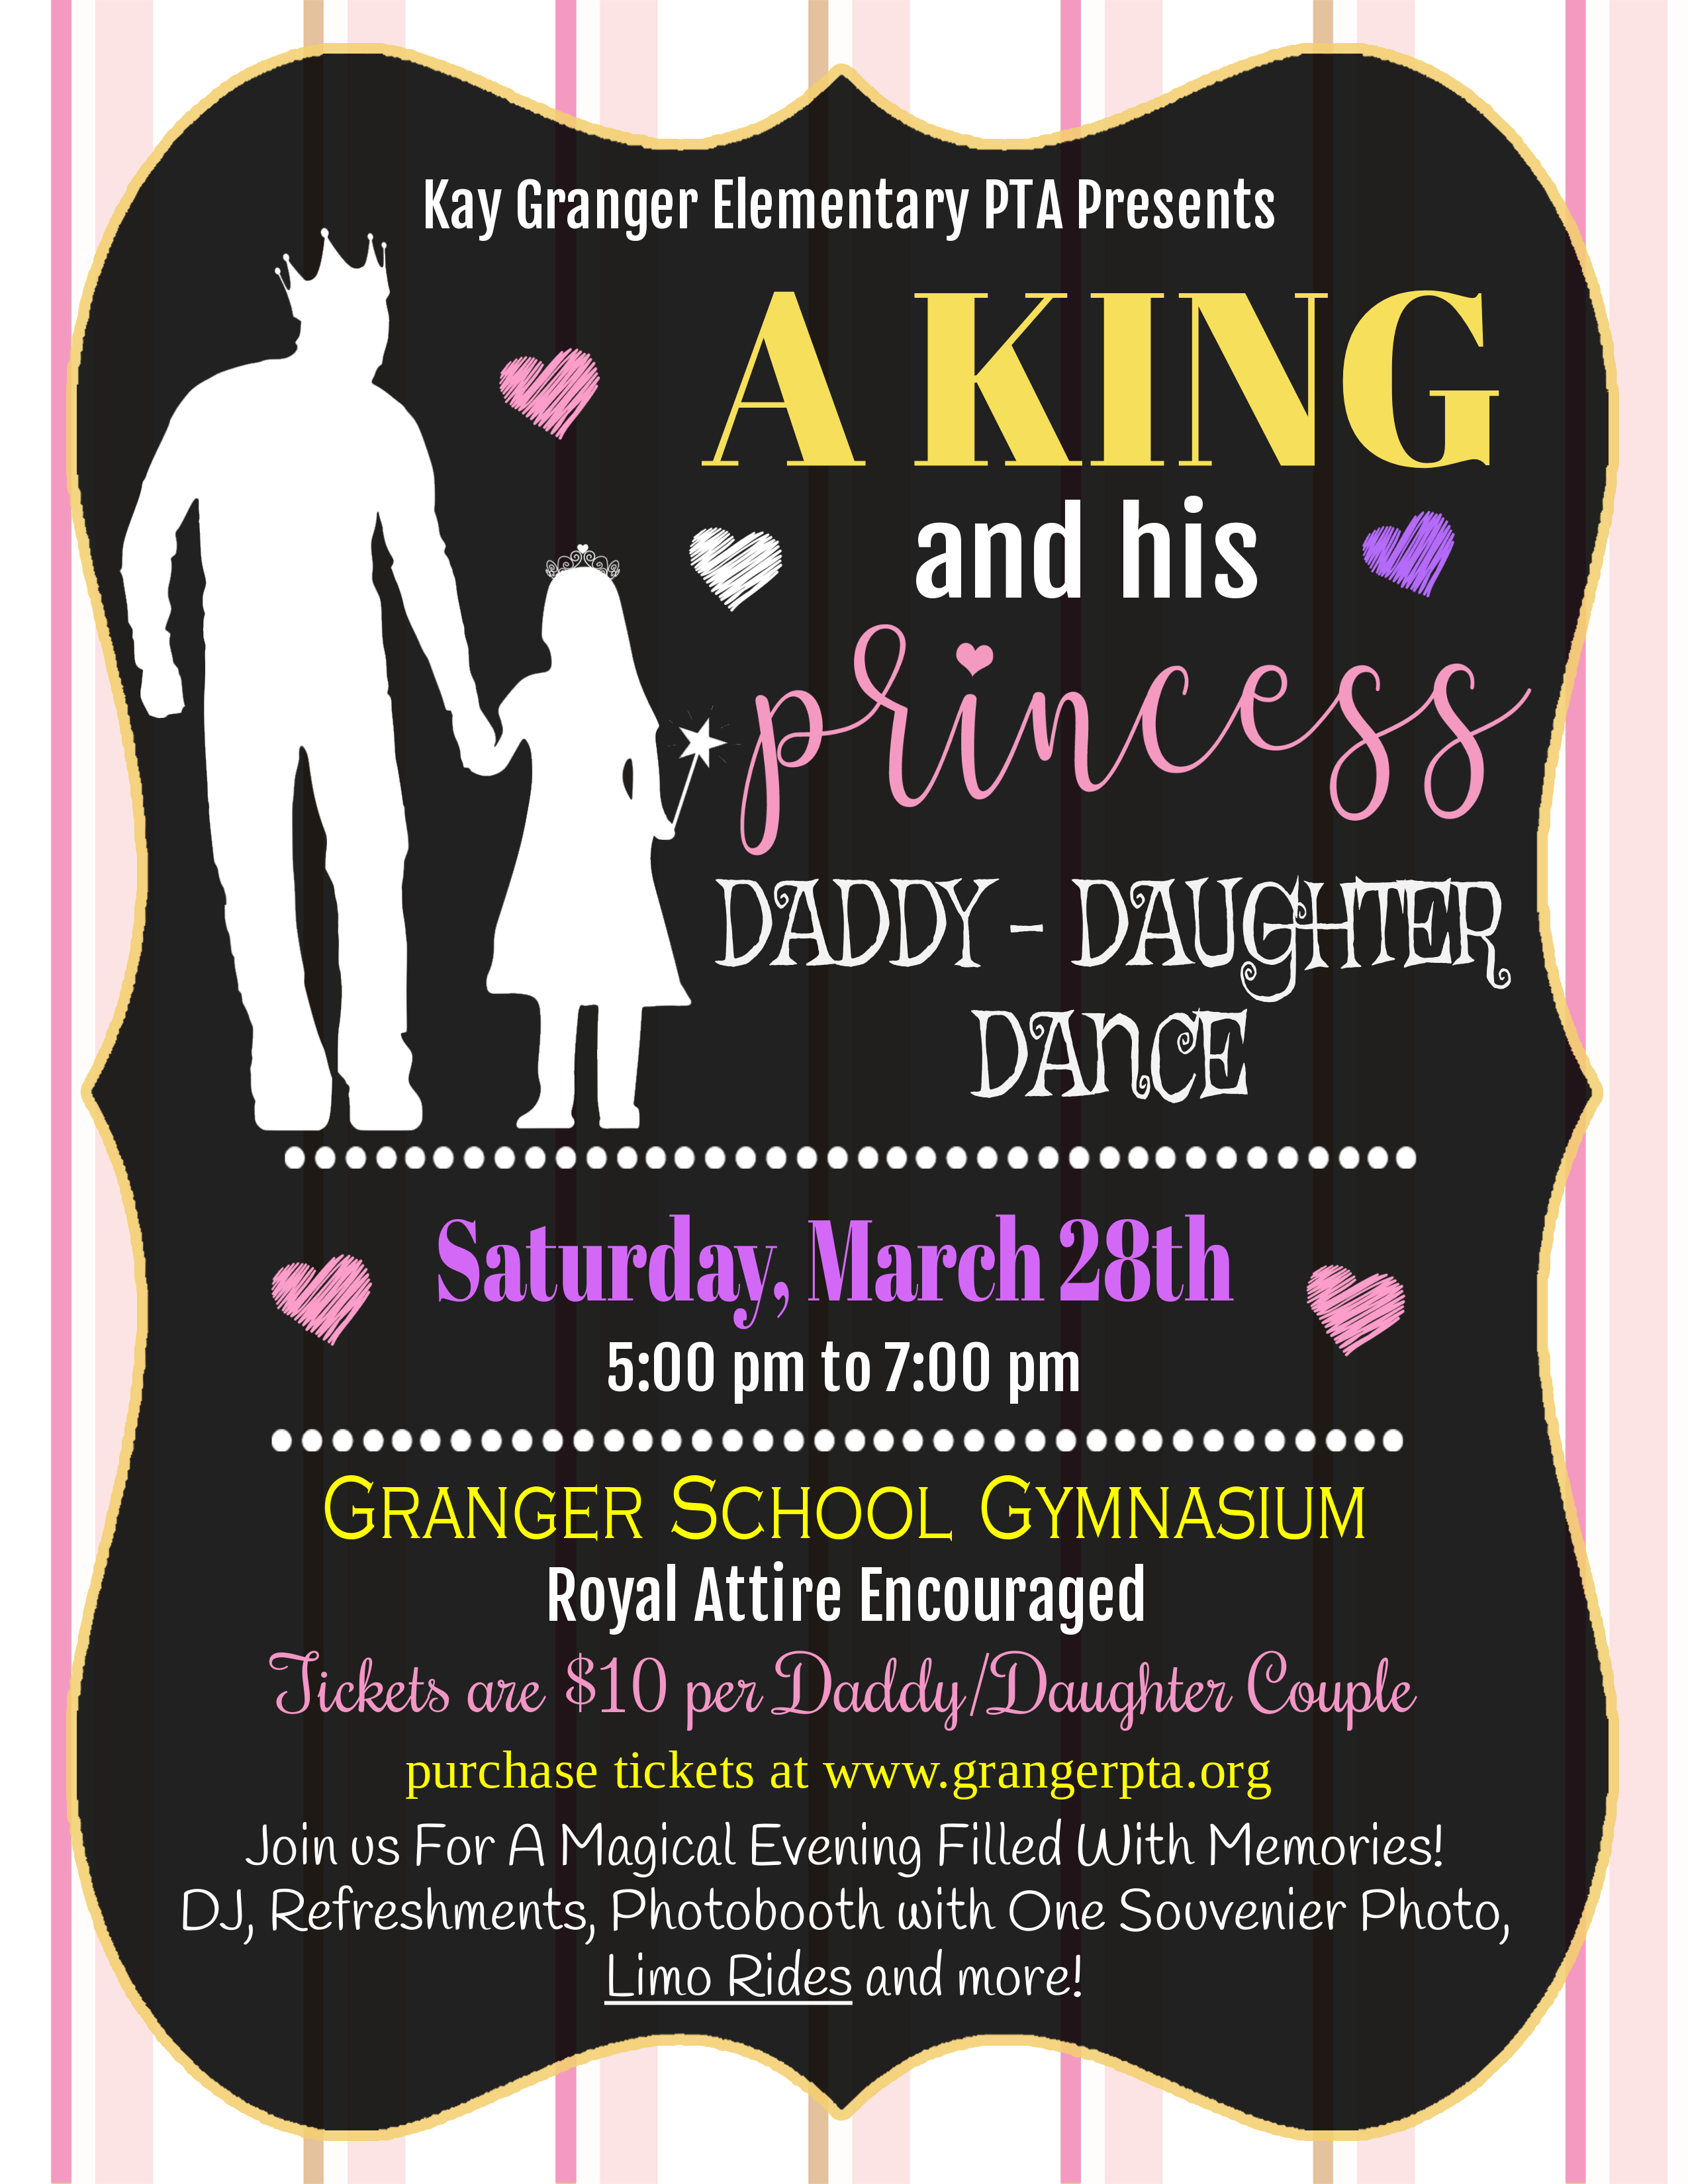 Daddy Daughter Dance 5-7pm